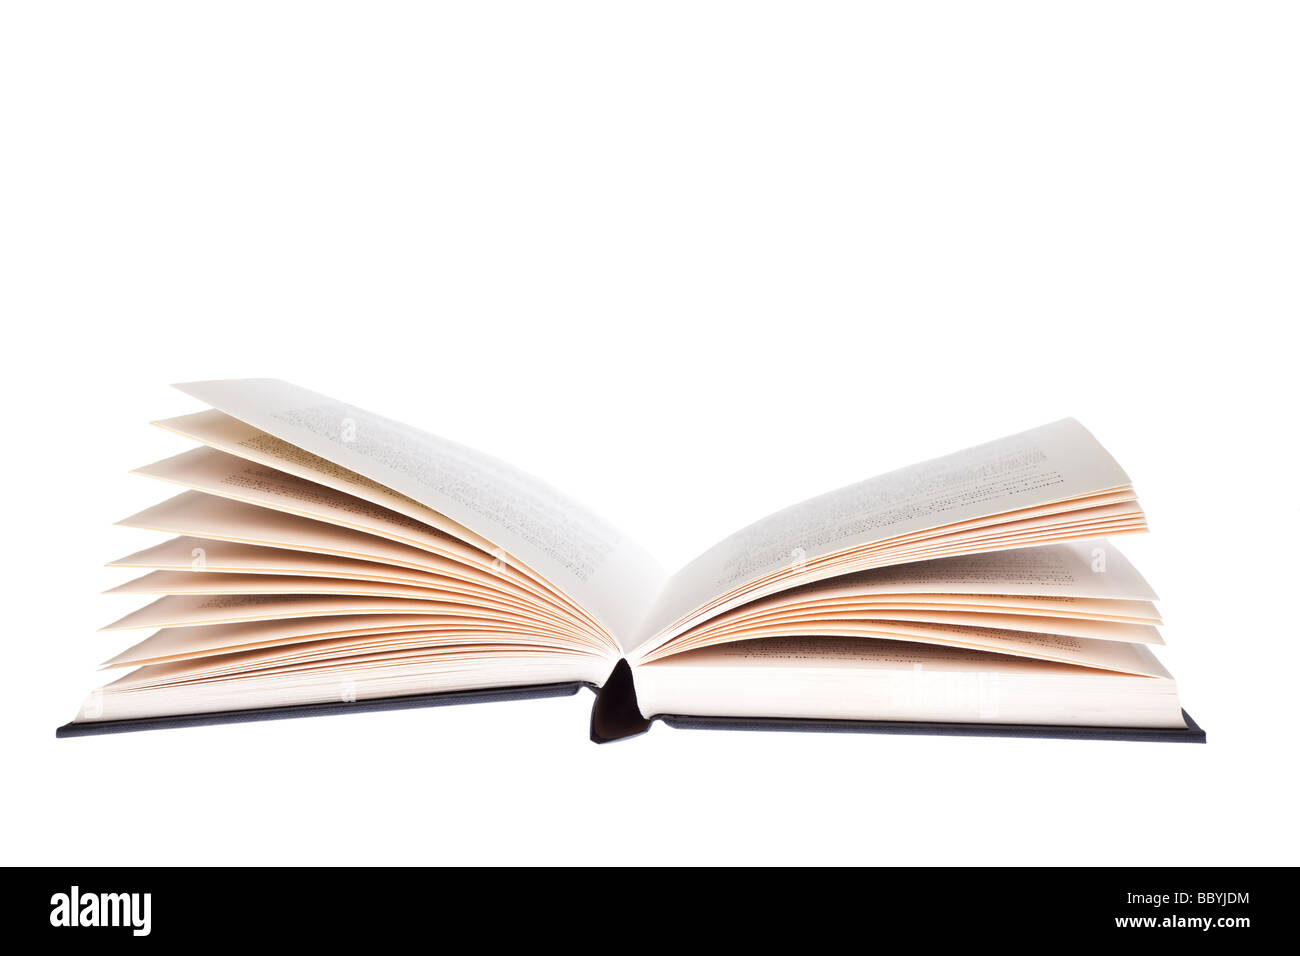 Open book cut out - Stock Image